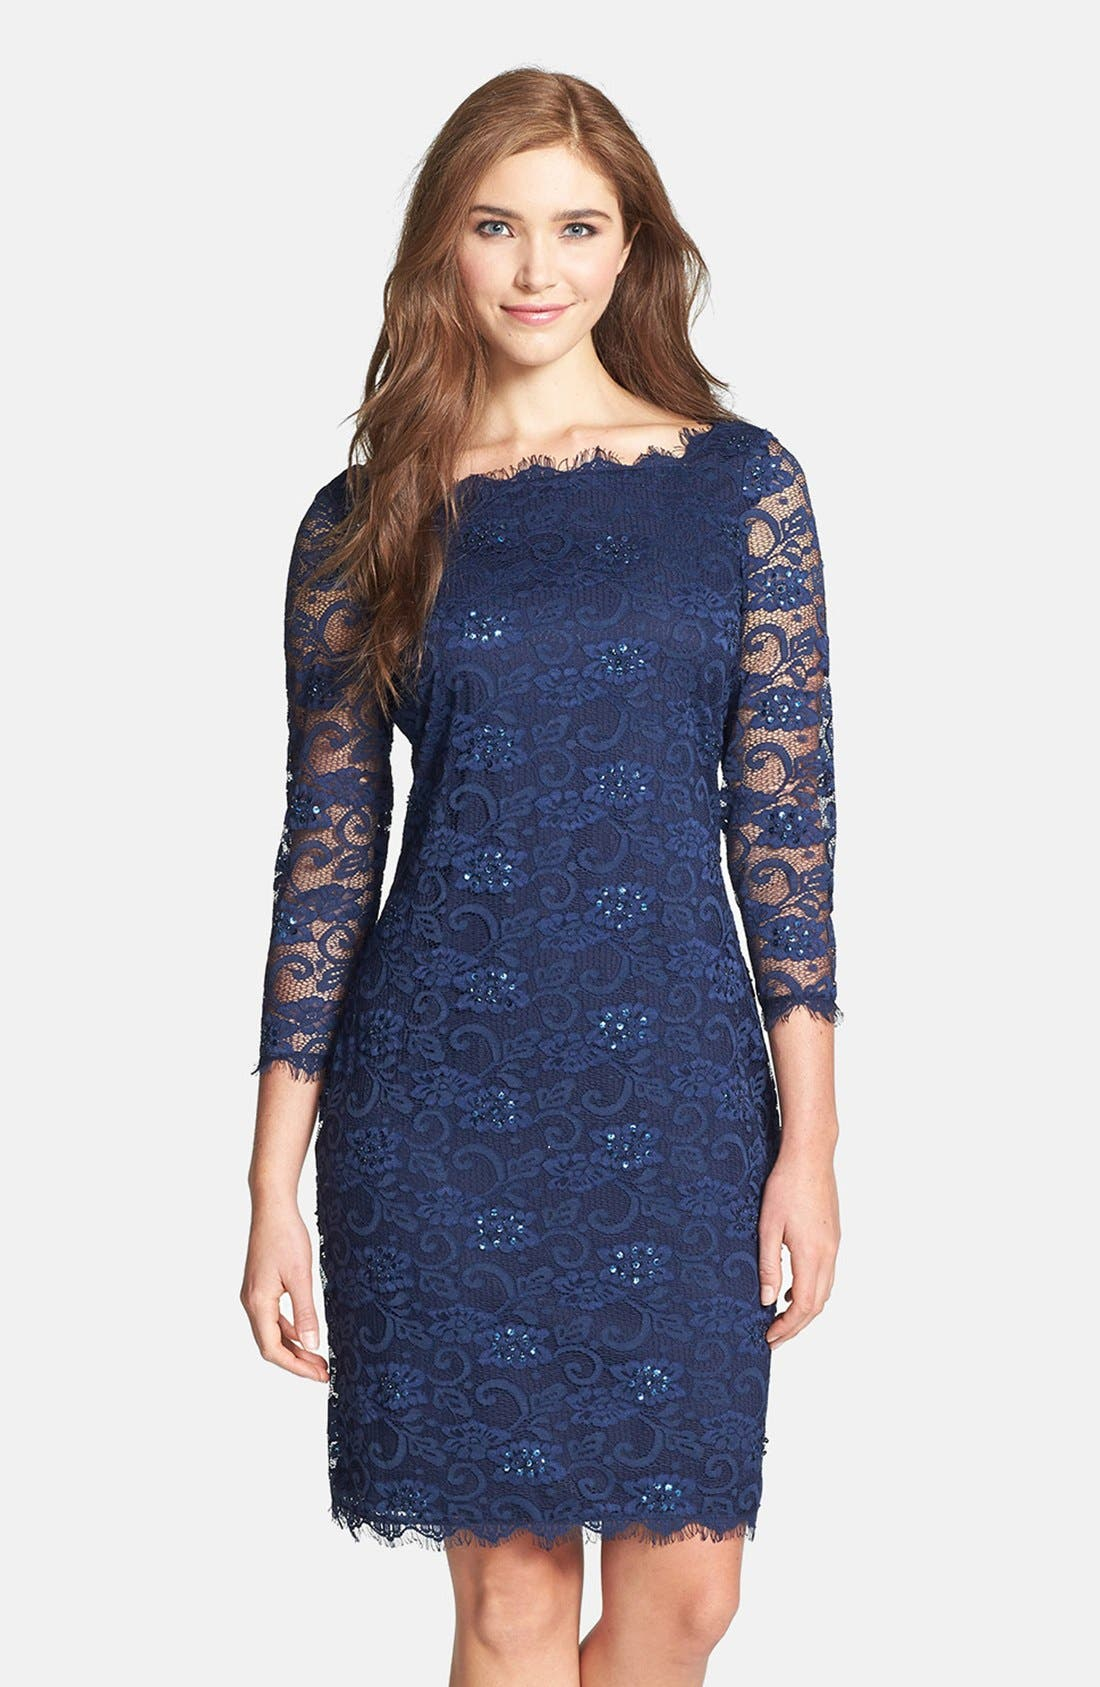 Embellished Lace Sheath Dress,                             Main thumbnail 1, color,                             410